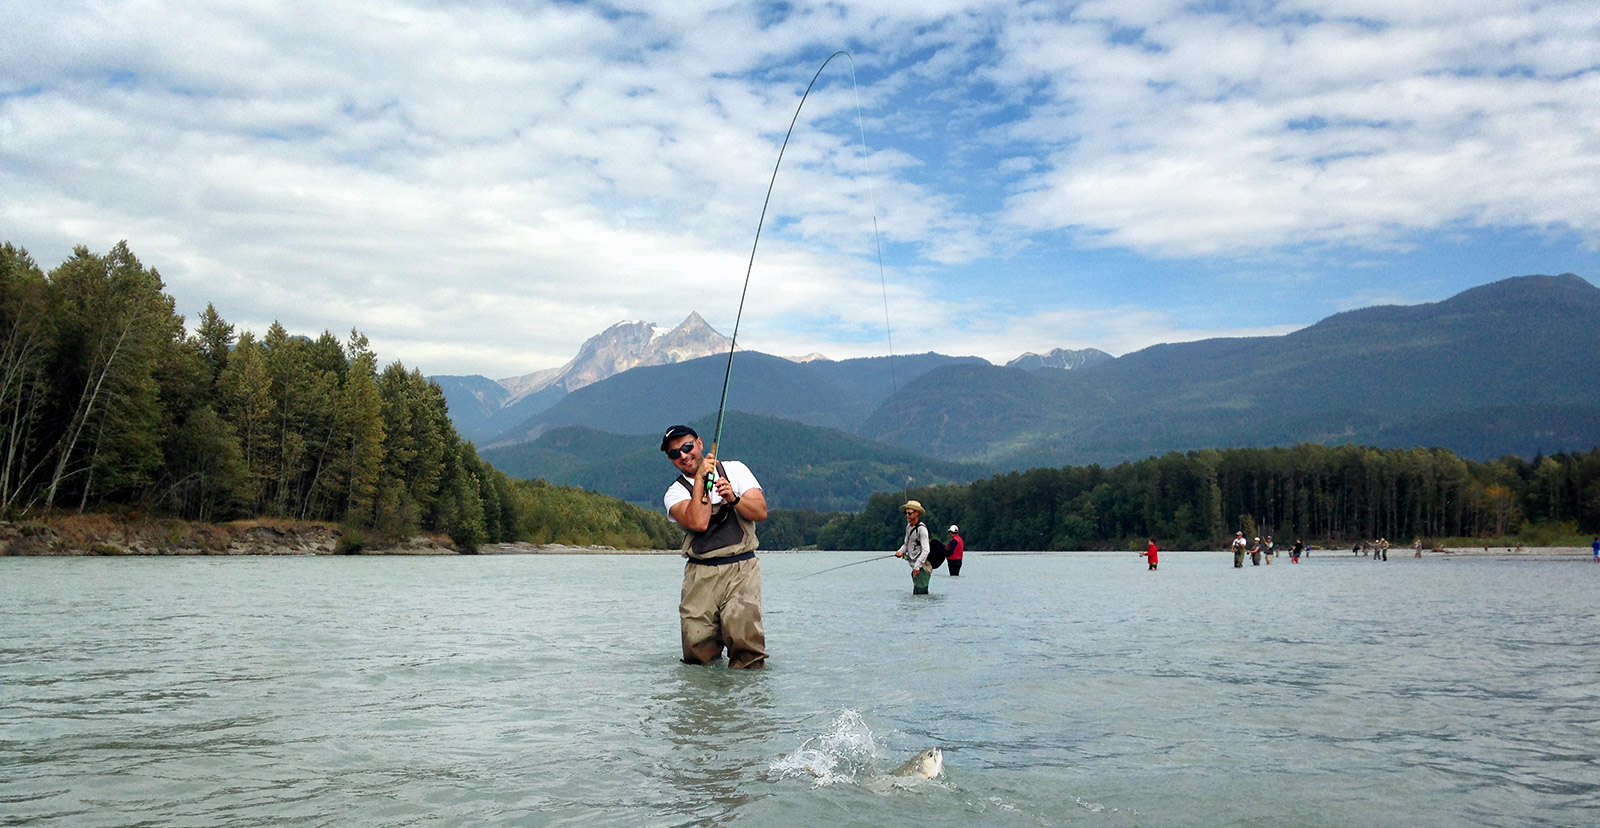 squamish river fishing, squamish river fishing guides, pink salmon, pink salmon fly fishing, fly fishing, fly fishing guides, vancouver fly fishing, salmon fly fishing, vancouver fly fishing guides, bc fly fishing, fly fishing tours, fly fishing trips